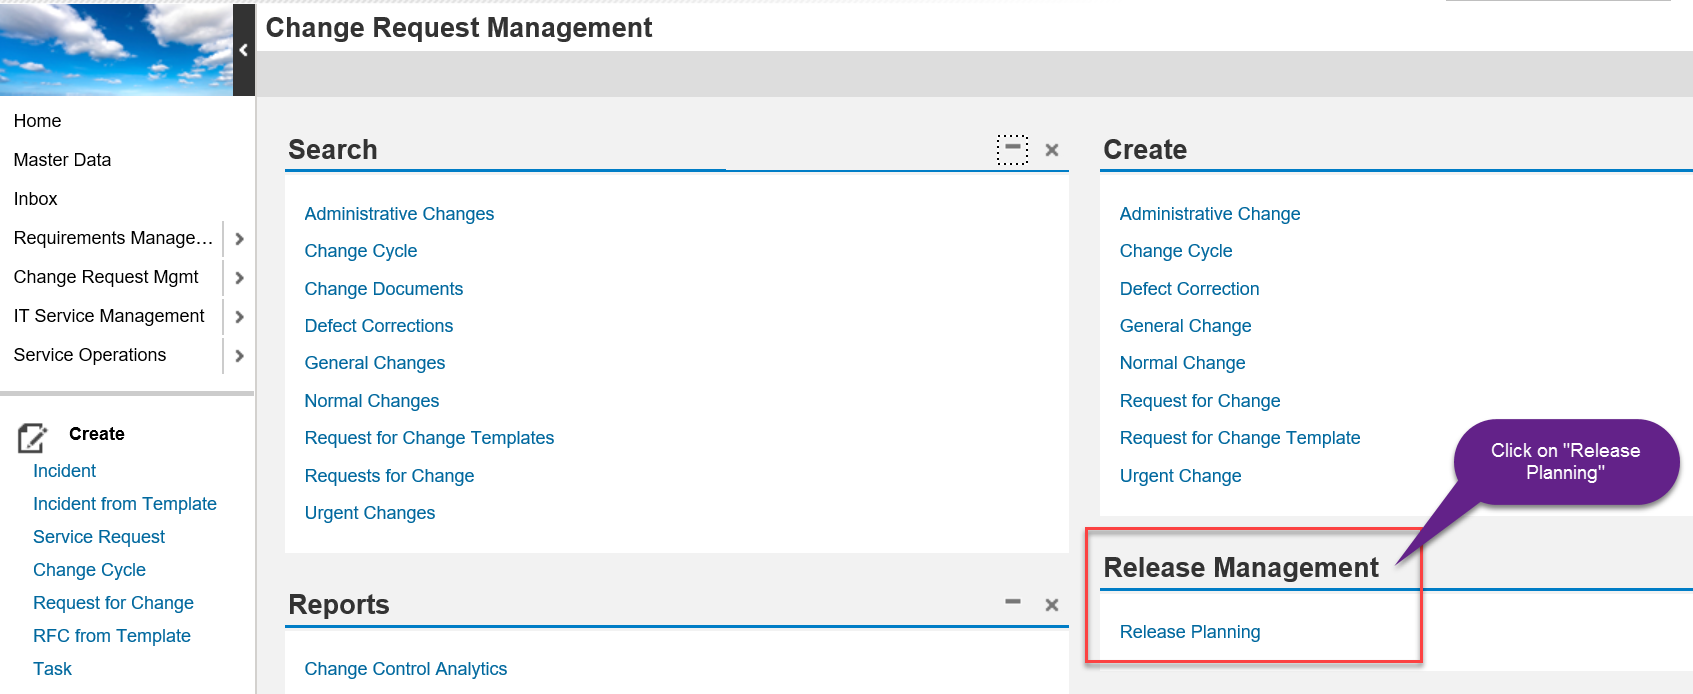 A Open The CRM UI With Transaction SM To Access SAP Solution Manager ITSM Click On Change Request Management Tab And Then Choose Release